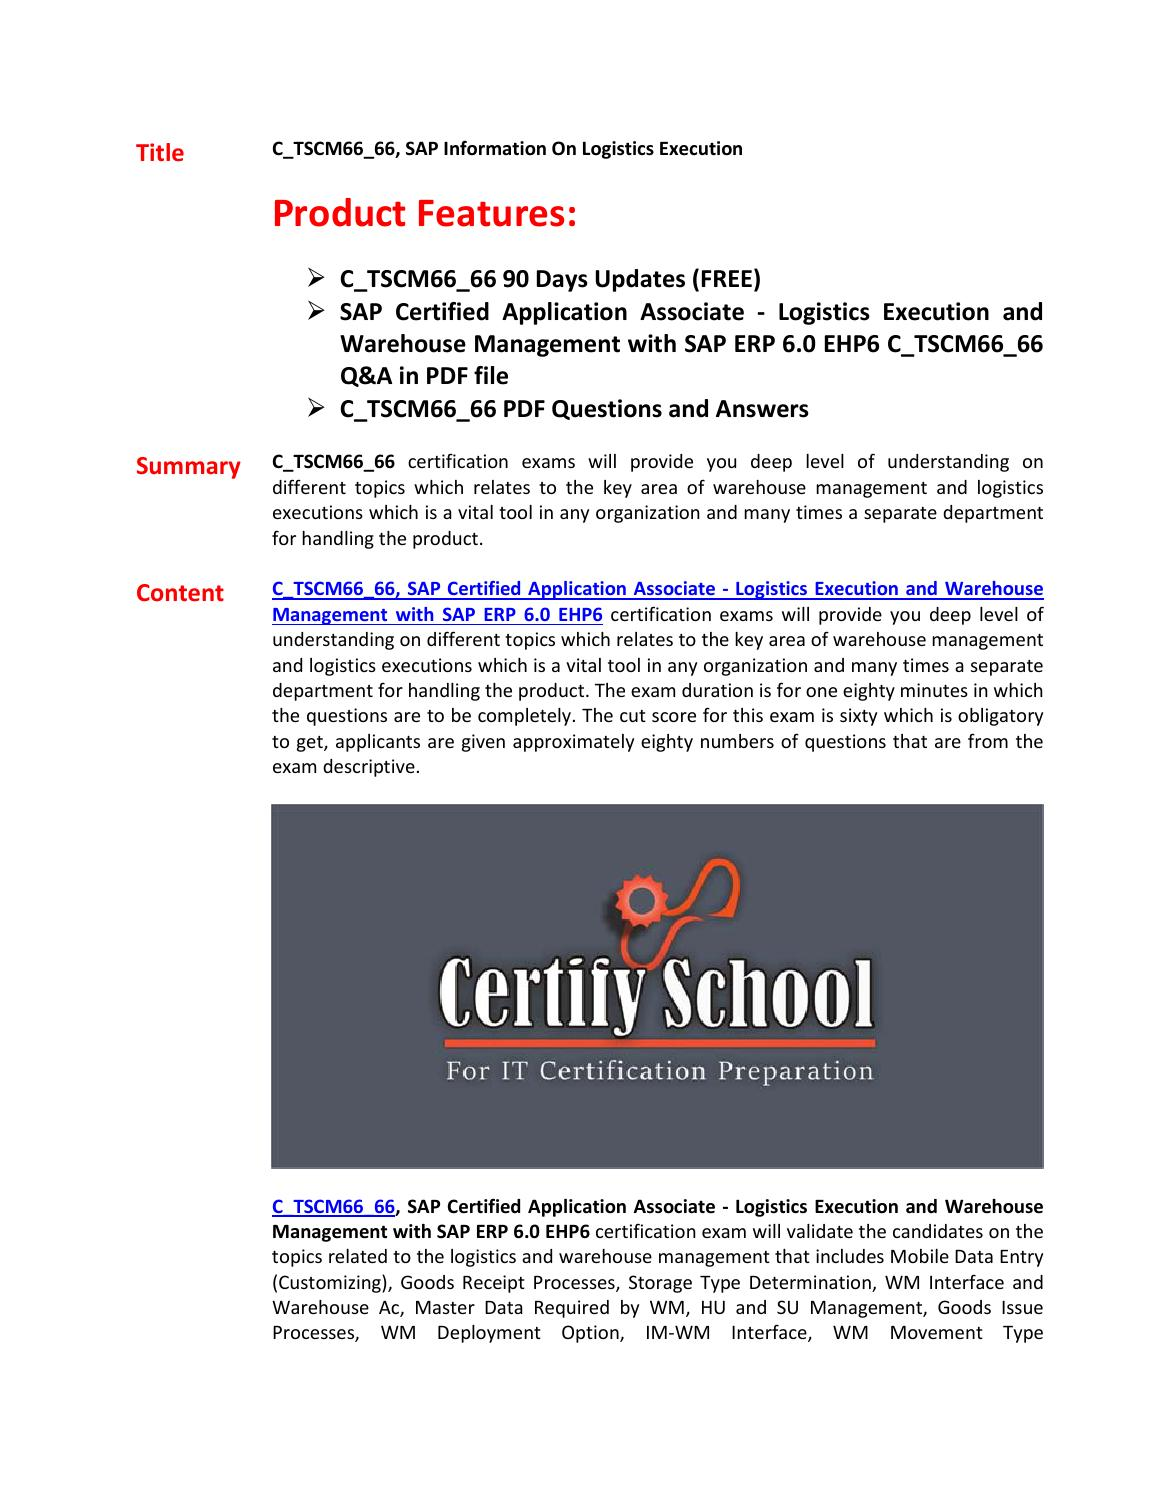 C_TSCM66_66 Exam Questions & Answers by dalestyen - issuu